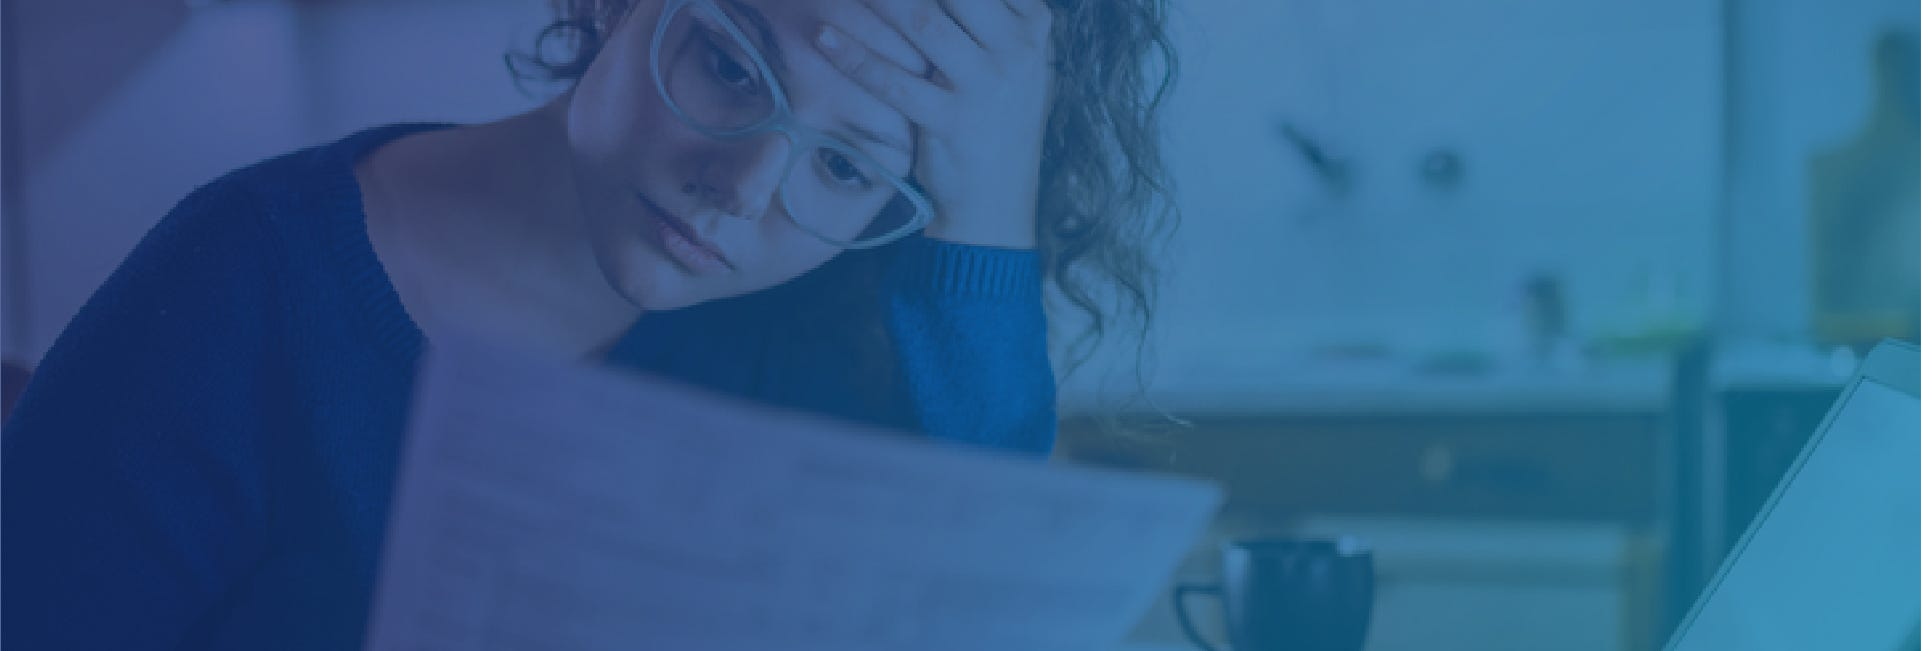 Woman wearing glass and looking unhappily at a document as she has business stress